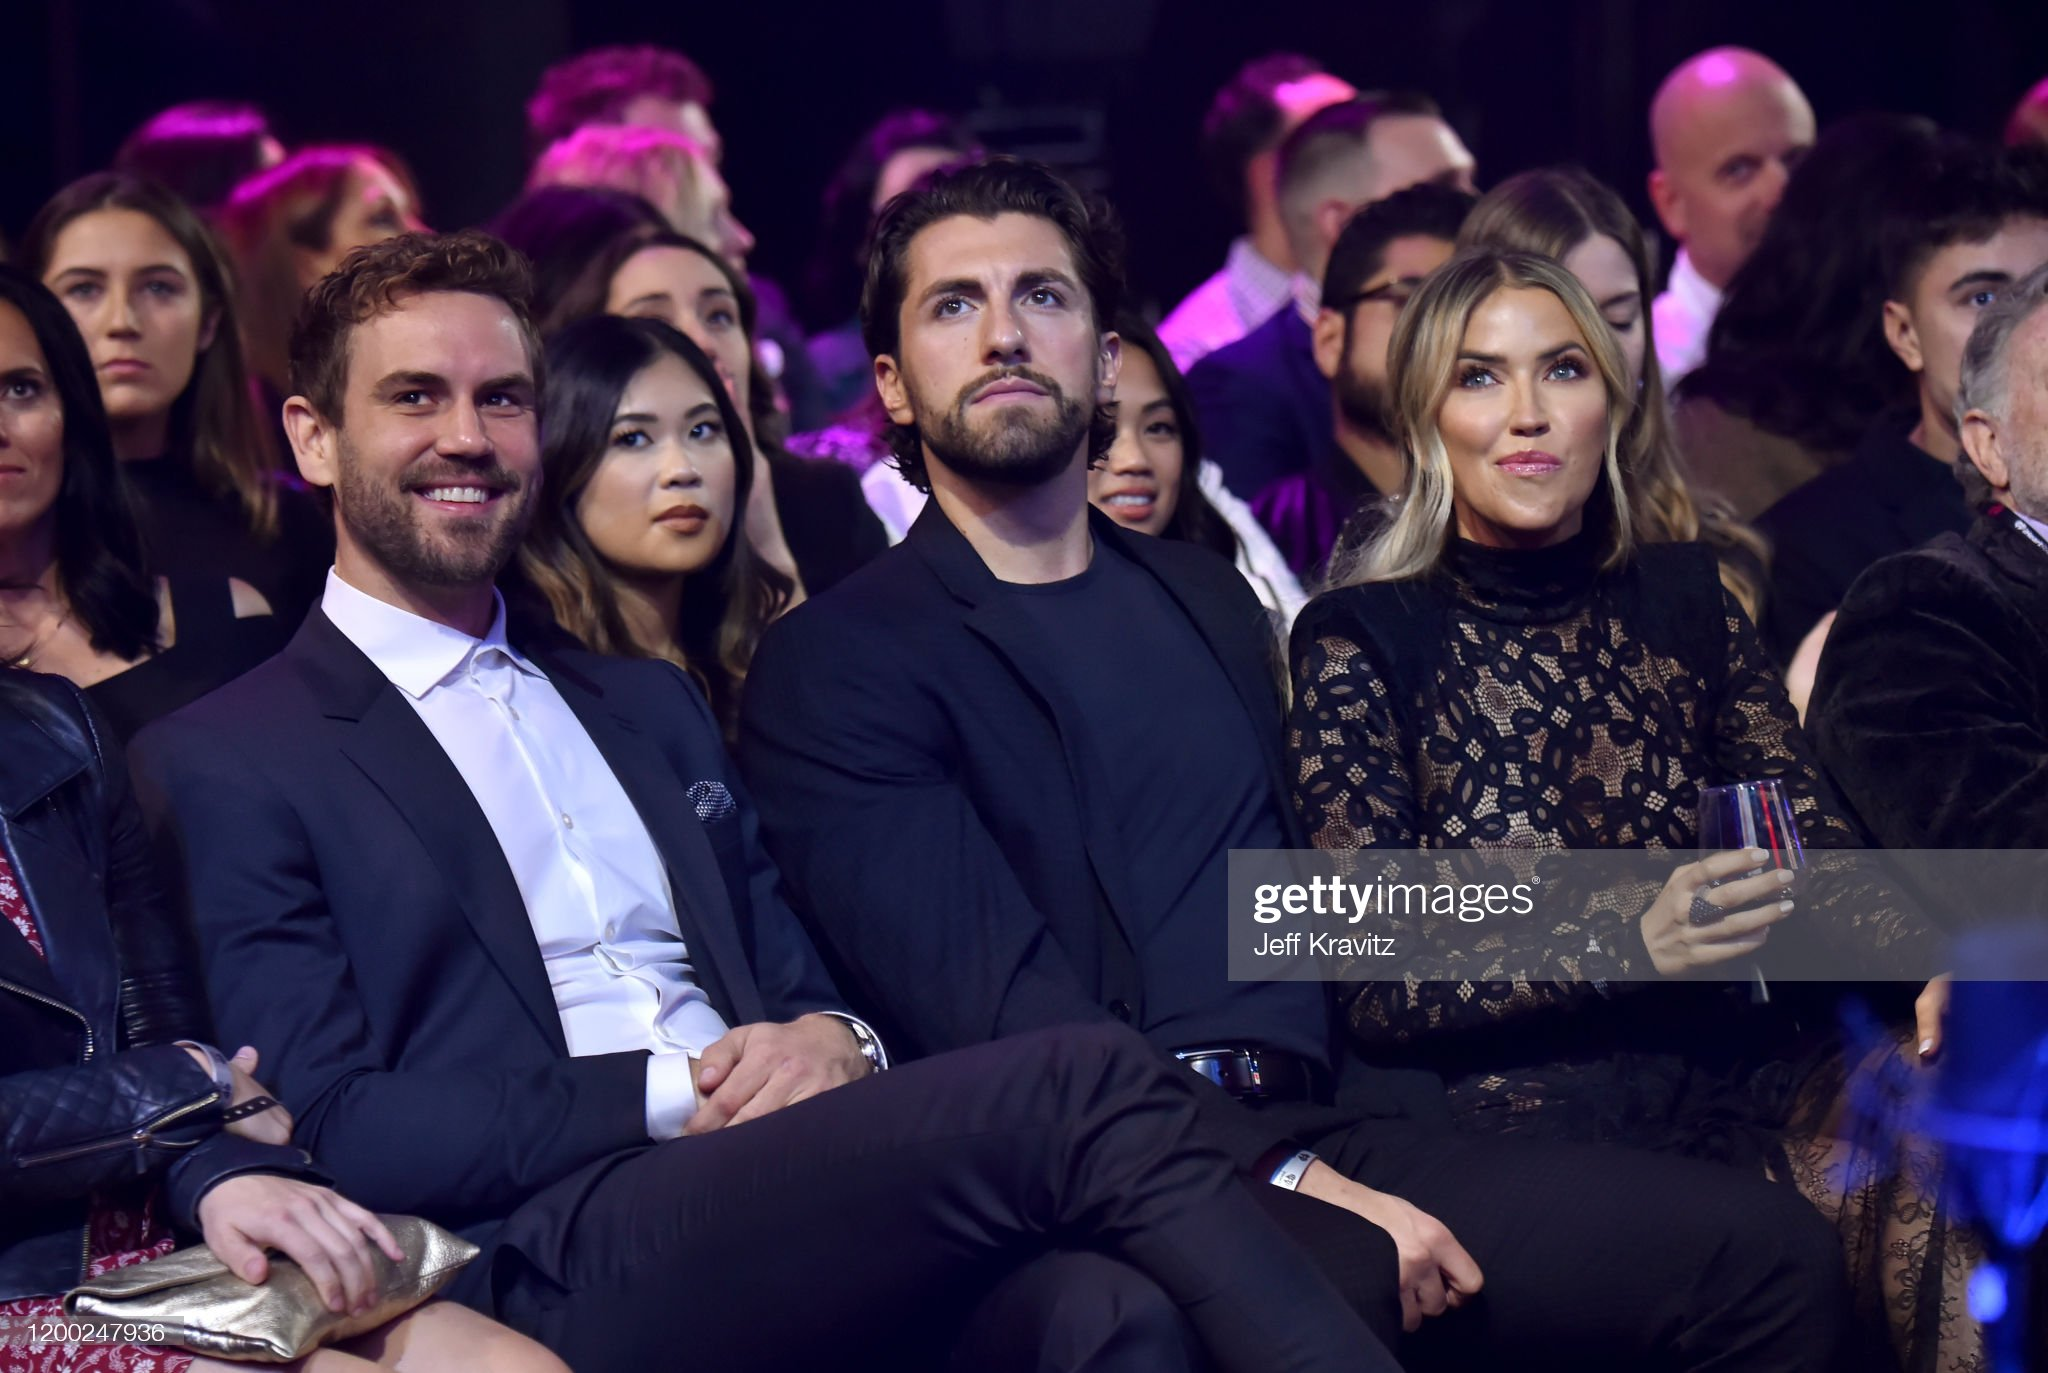 Kaitlyn Bristowe - Jason Tartick - FAN Forum - Discussion  - Page 51 Nick-viall-jason-tartick-and-kaitlyn-bristowe-attend-the-2020-at-picture-id1200247936?s=2048x2048